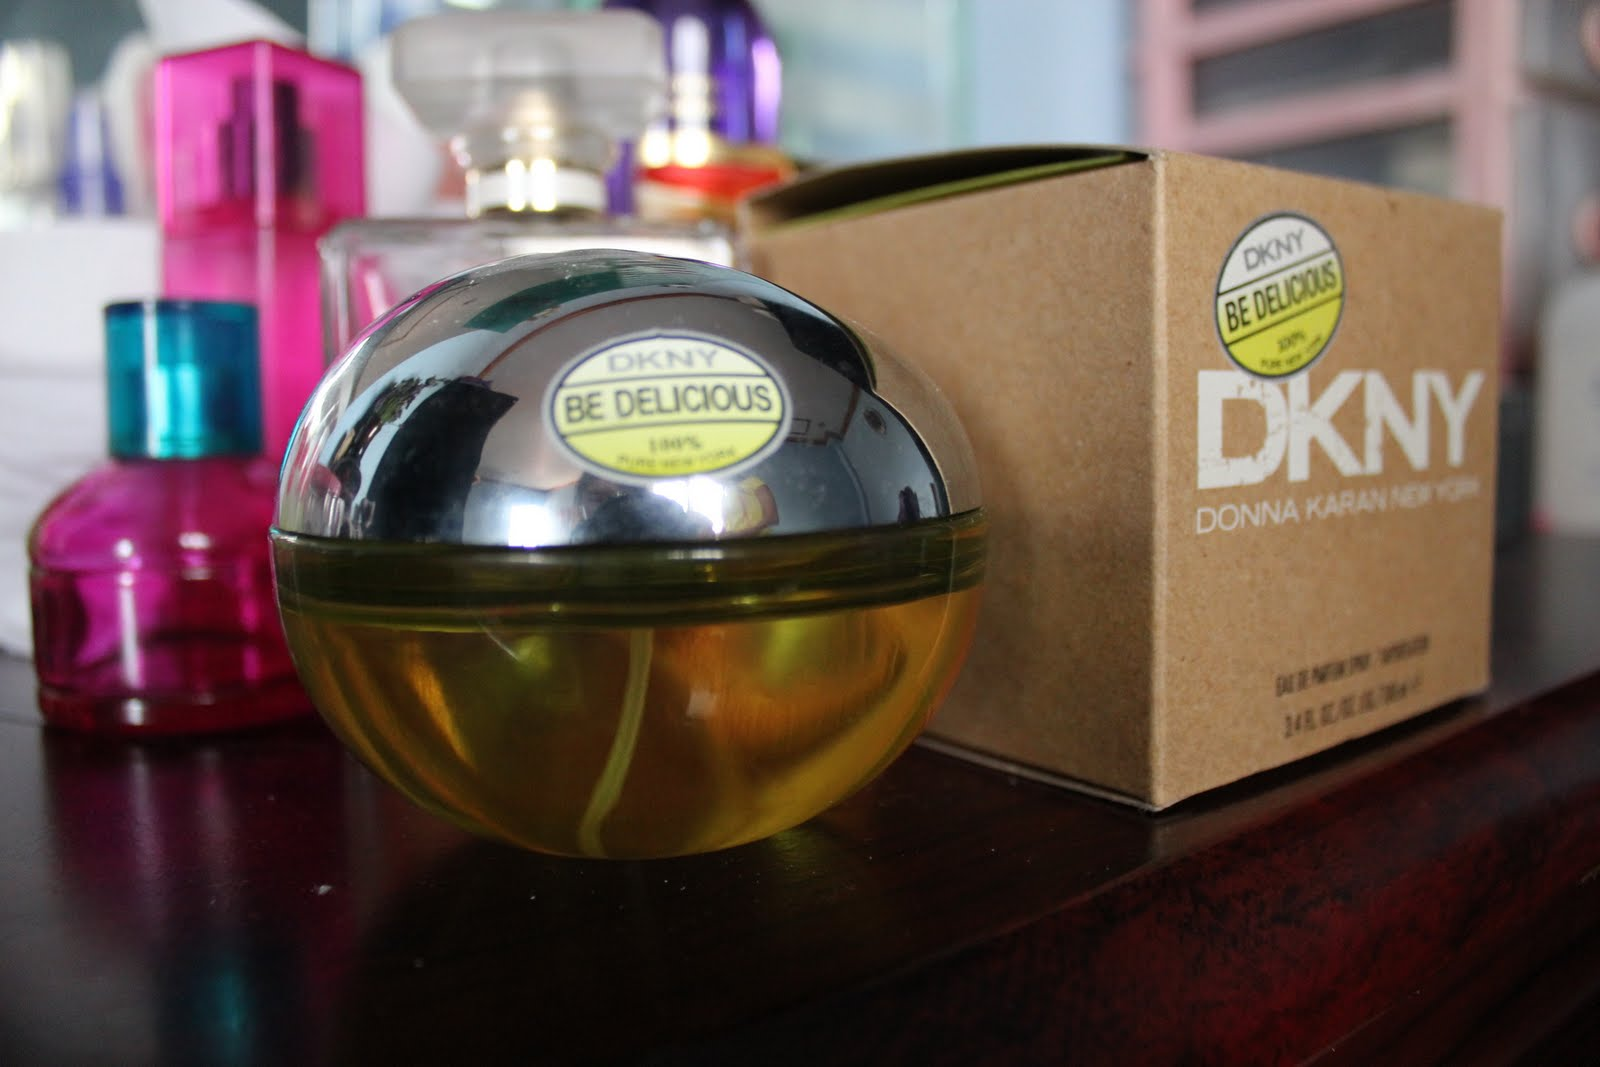 SPONTANEITY: DKNY Be delicious (apple green) perfume review